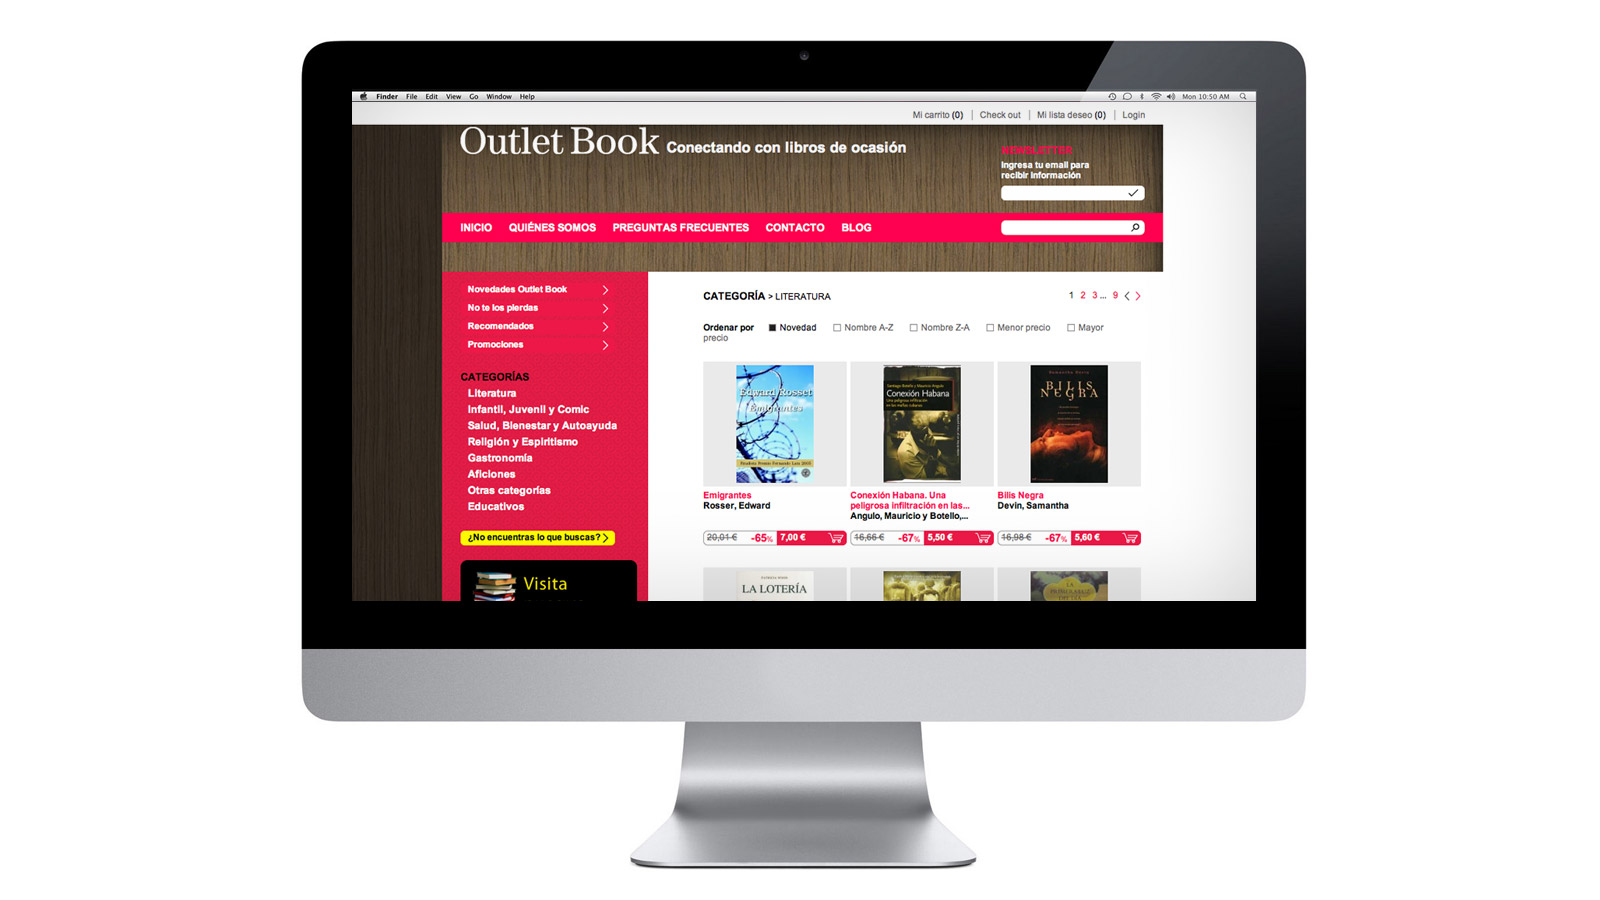 Outlet Book